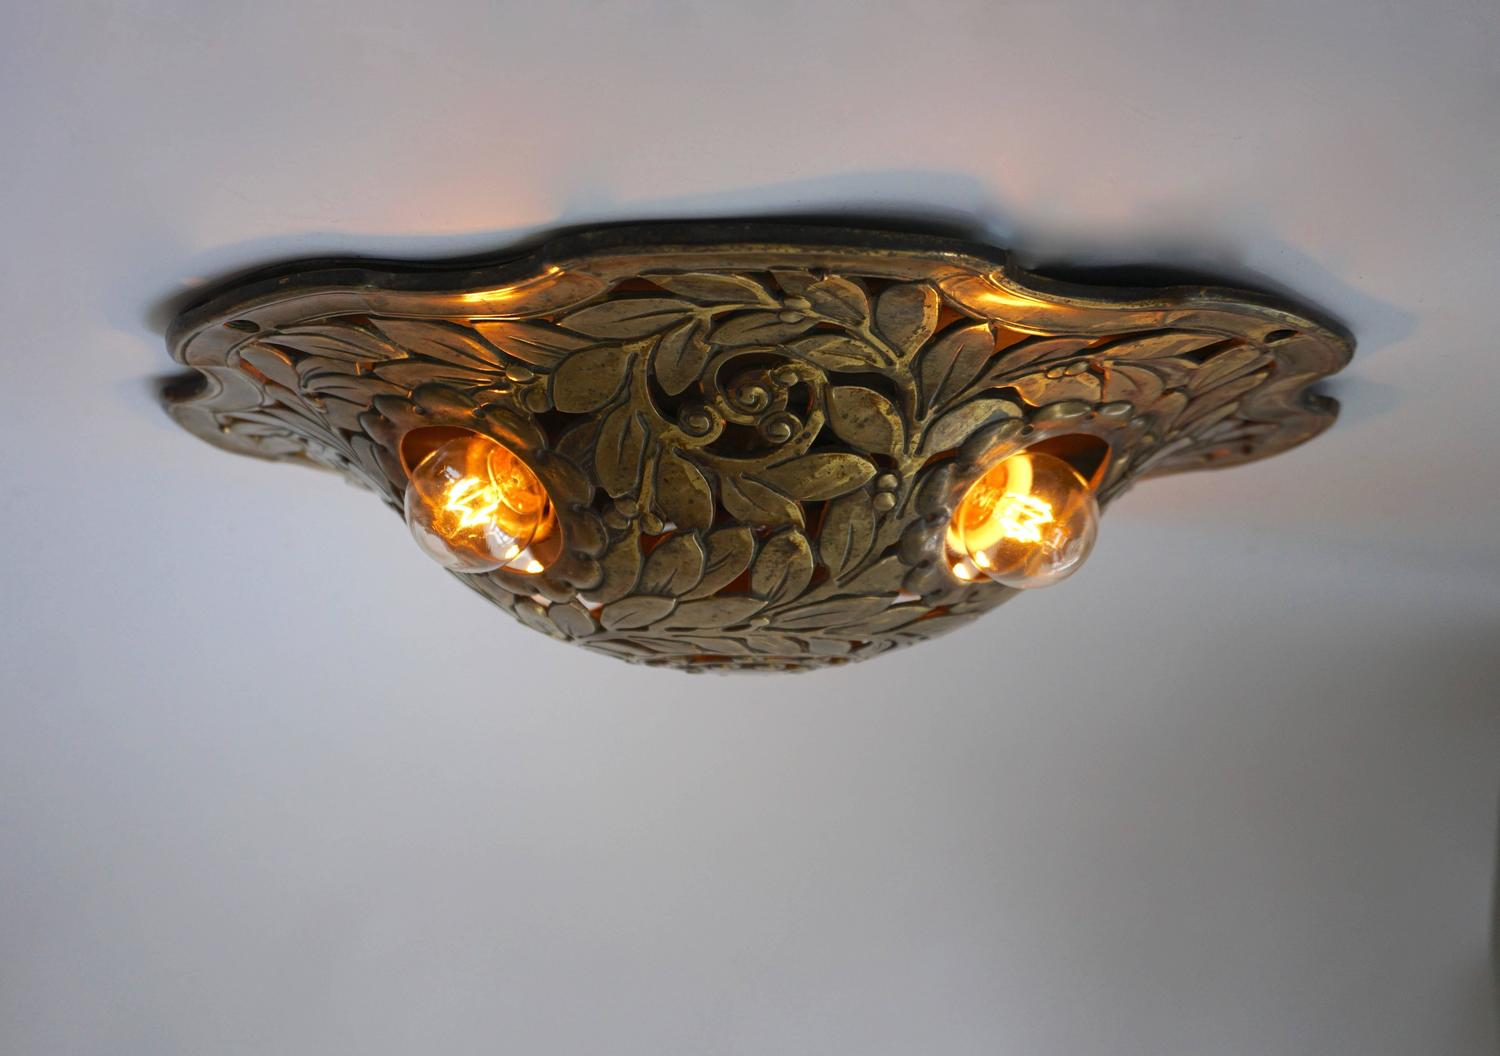 Wall Sconces Flush Mount : Wonderful Bronze Flush Mount or Wall Sconce For Sale at 1stdibs